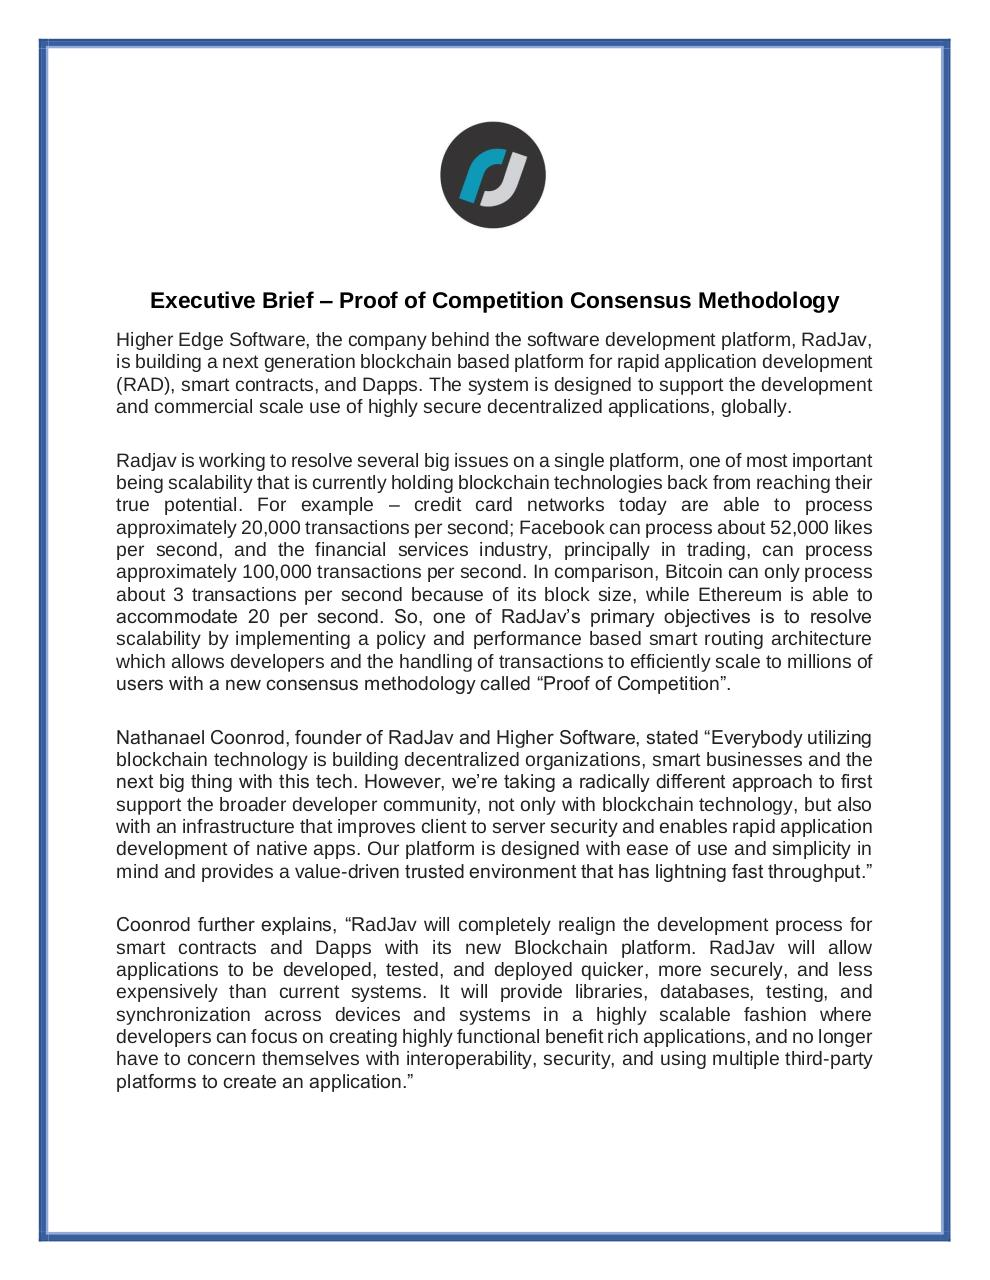 RadJav__Executive_Brief_on_Proof_of_Competition_Consensus_Methodology.pdf - page 2/6